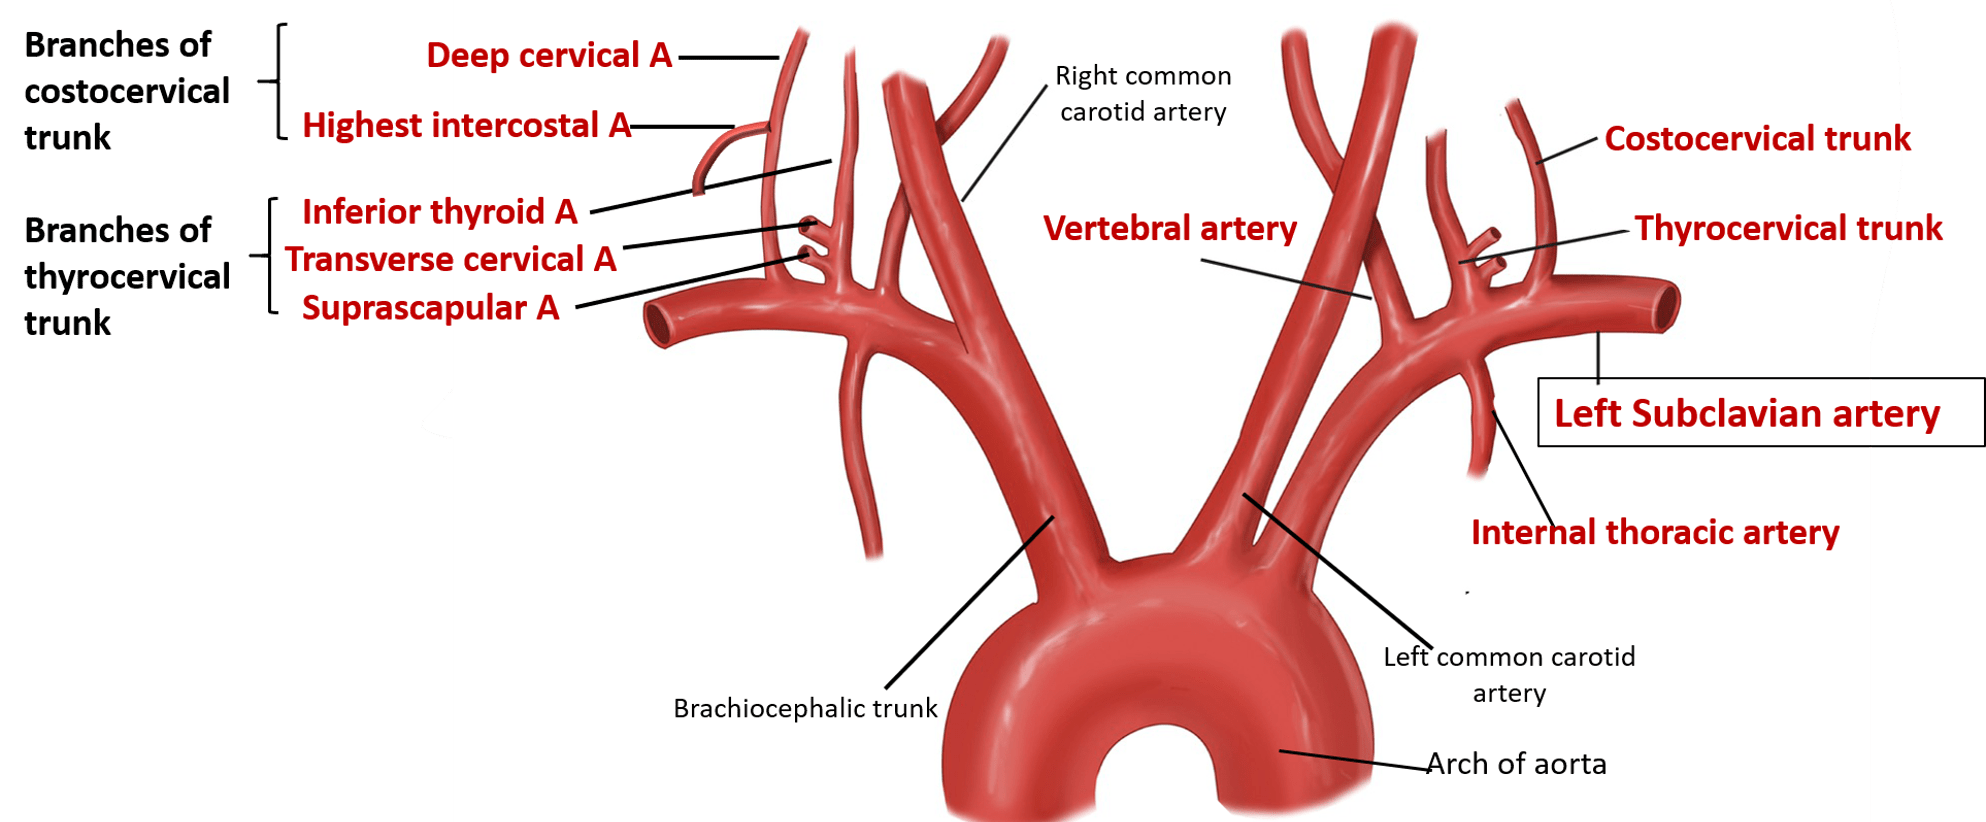 Subclavian Artery - Origin, Branches and Relations -